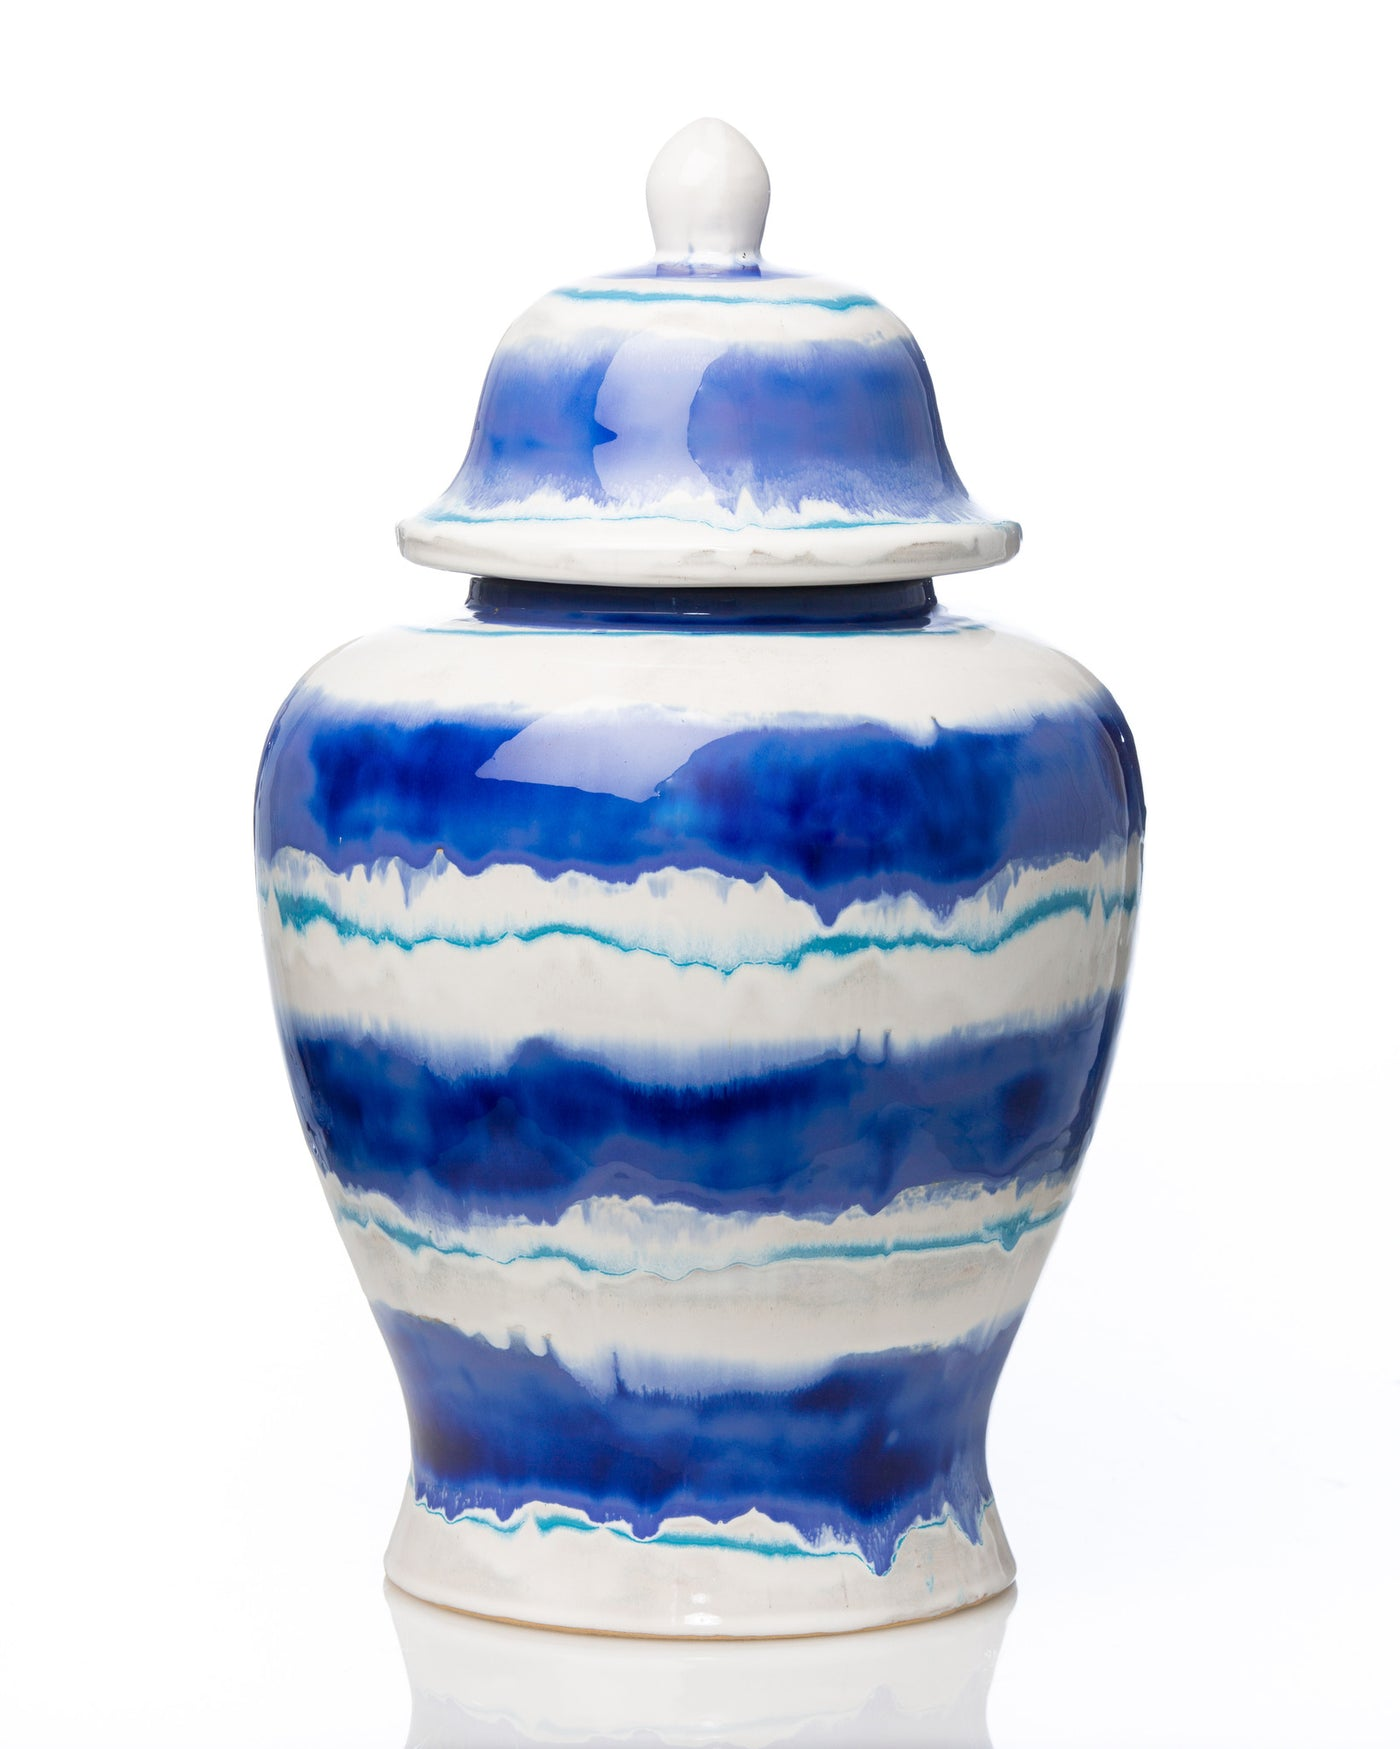 Watercolor Lidded Ceramic Urn - Villa Decor Design & Style - 2